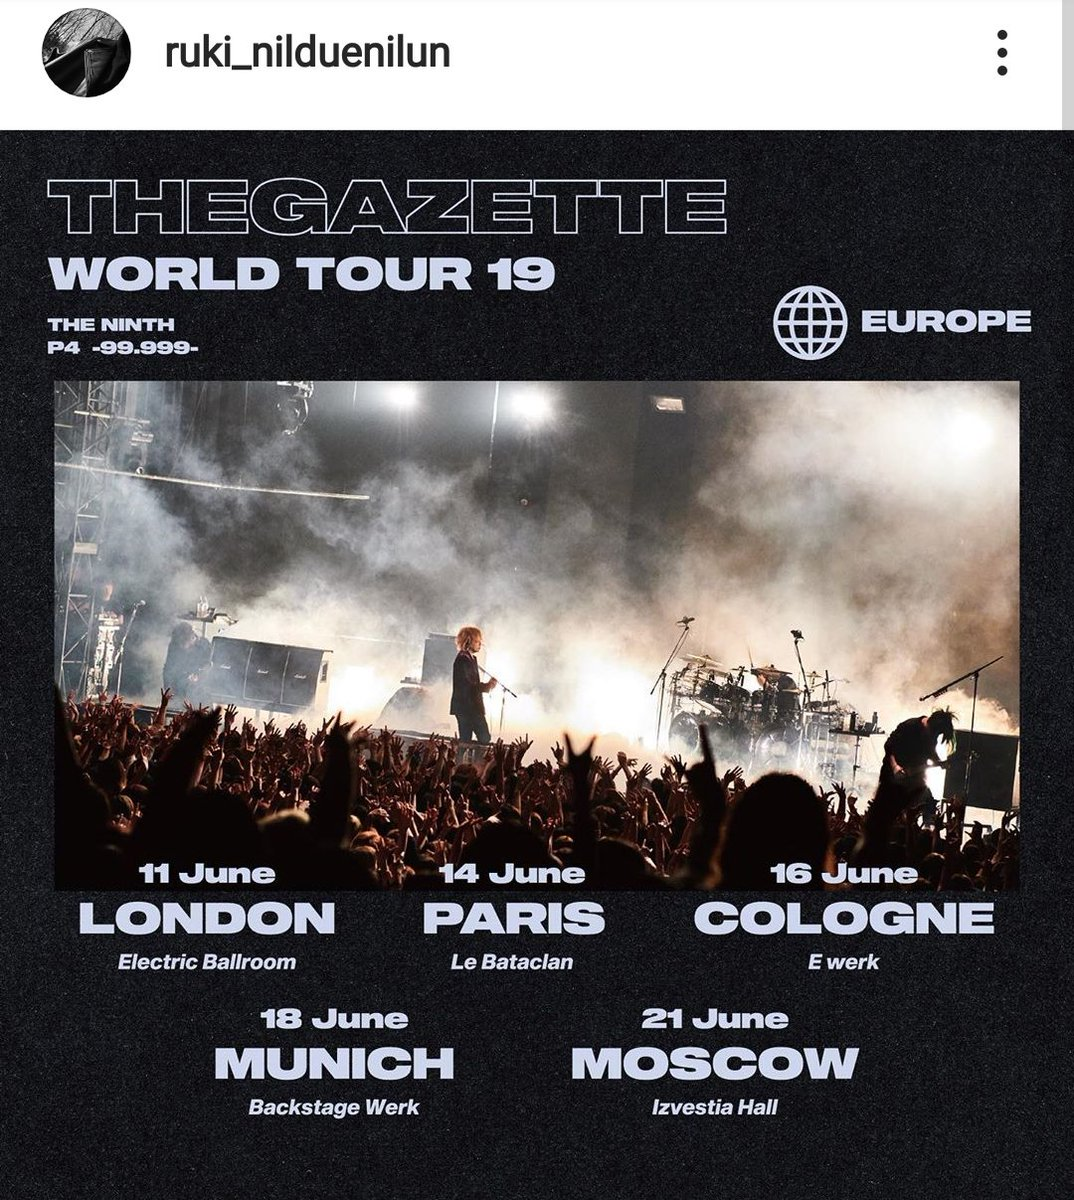 @RUKItheGazettE ruki_nilduenilun Next🔥🔥 #thegazette #ninth #worldtour2019 #phase4 #london #paris #cologne #munich #moscow #shanghai #taipei -----------------------------------------------